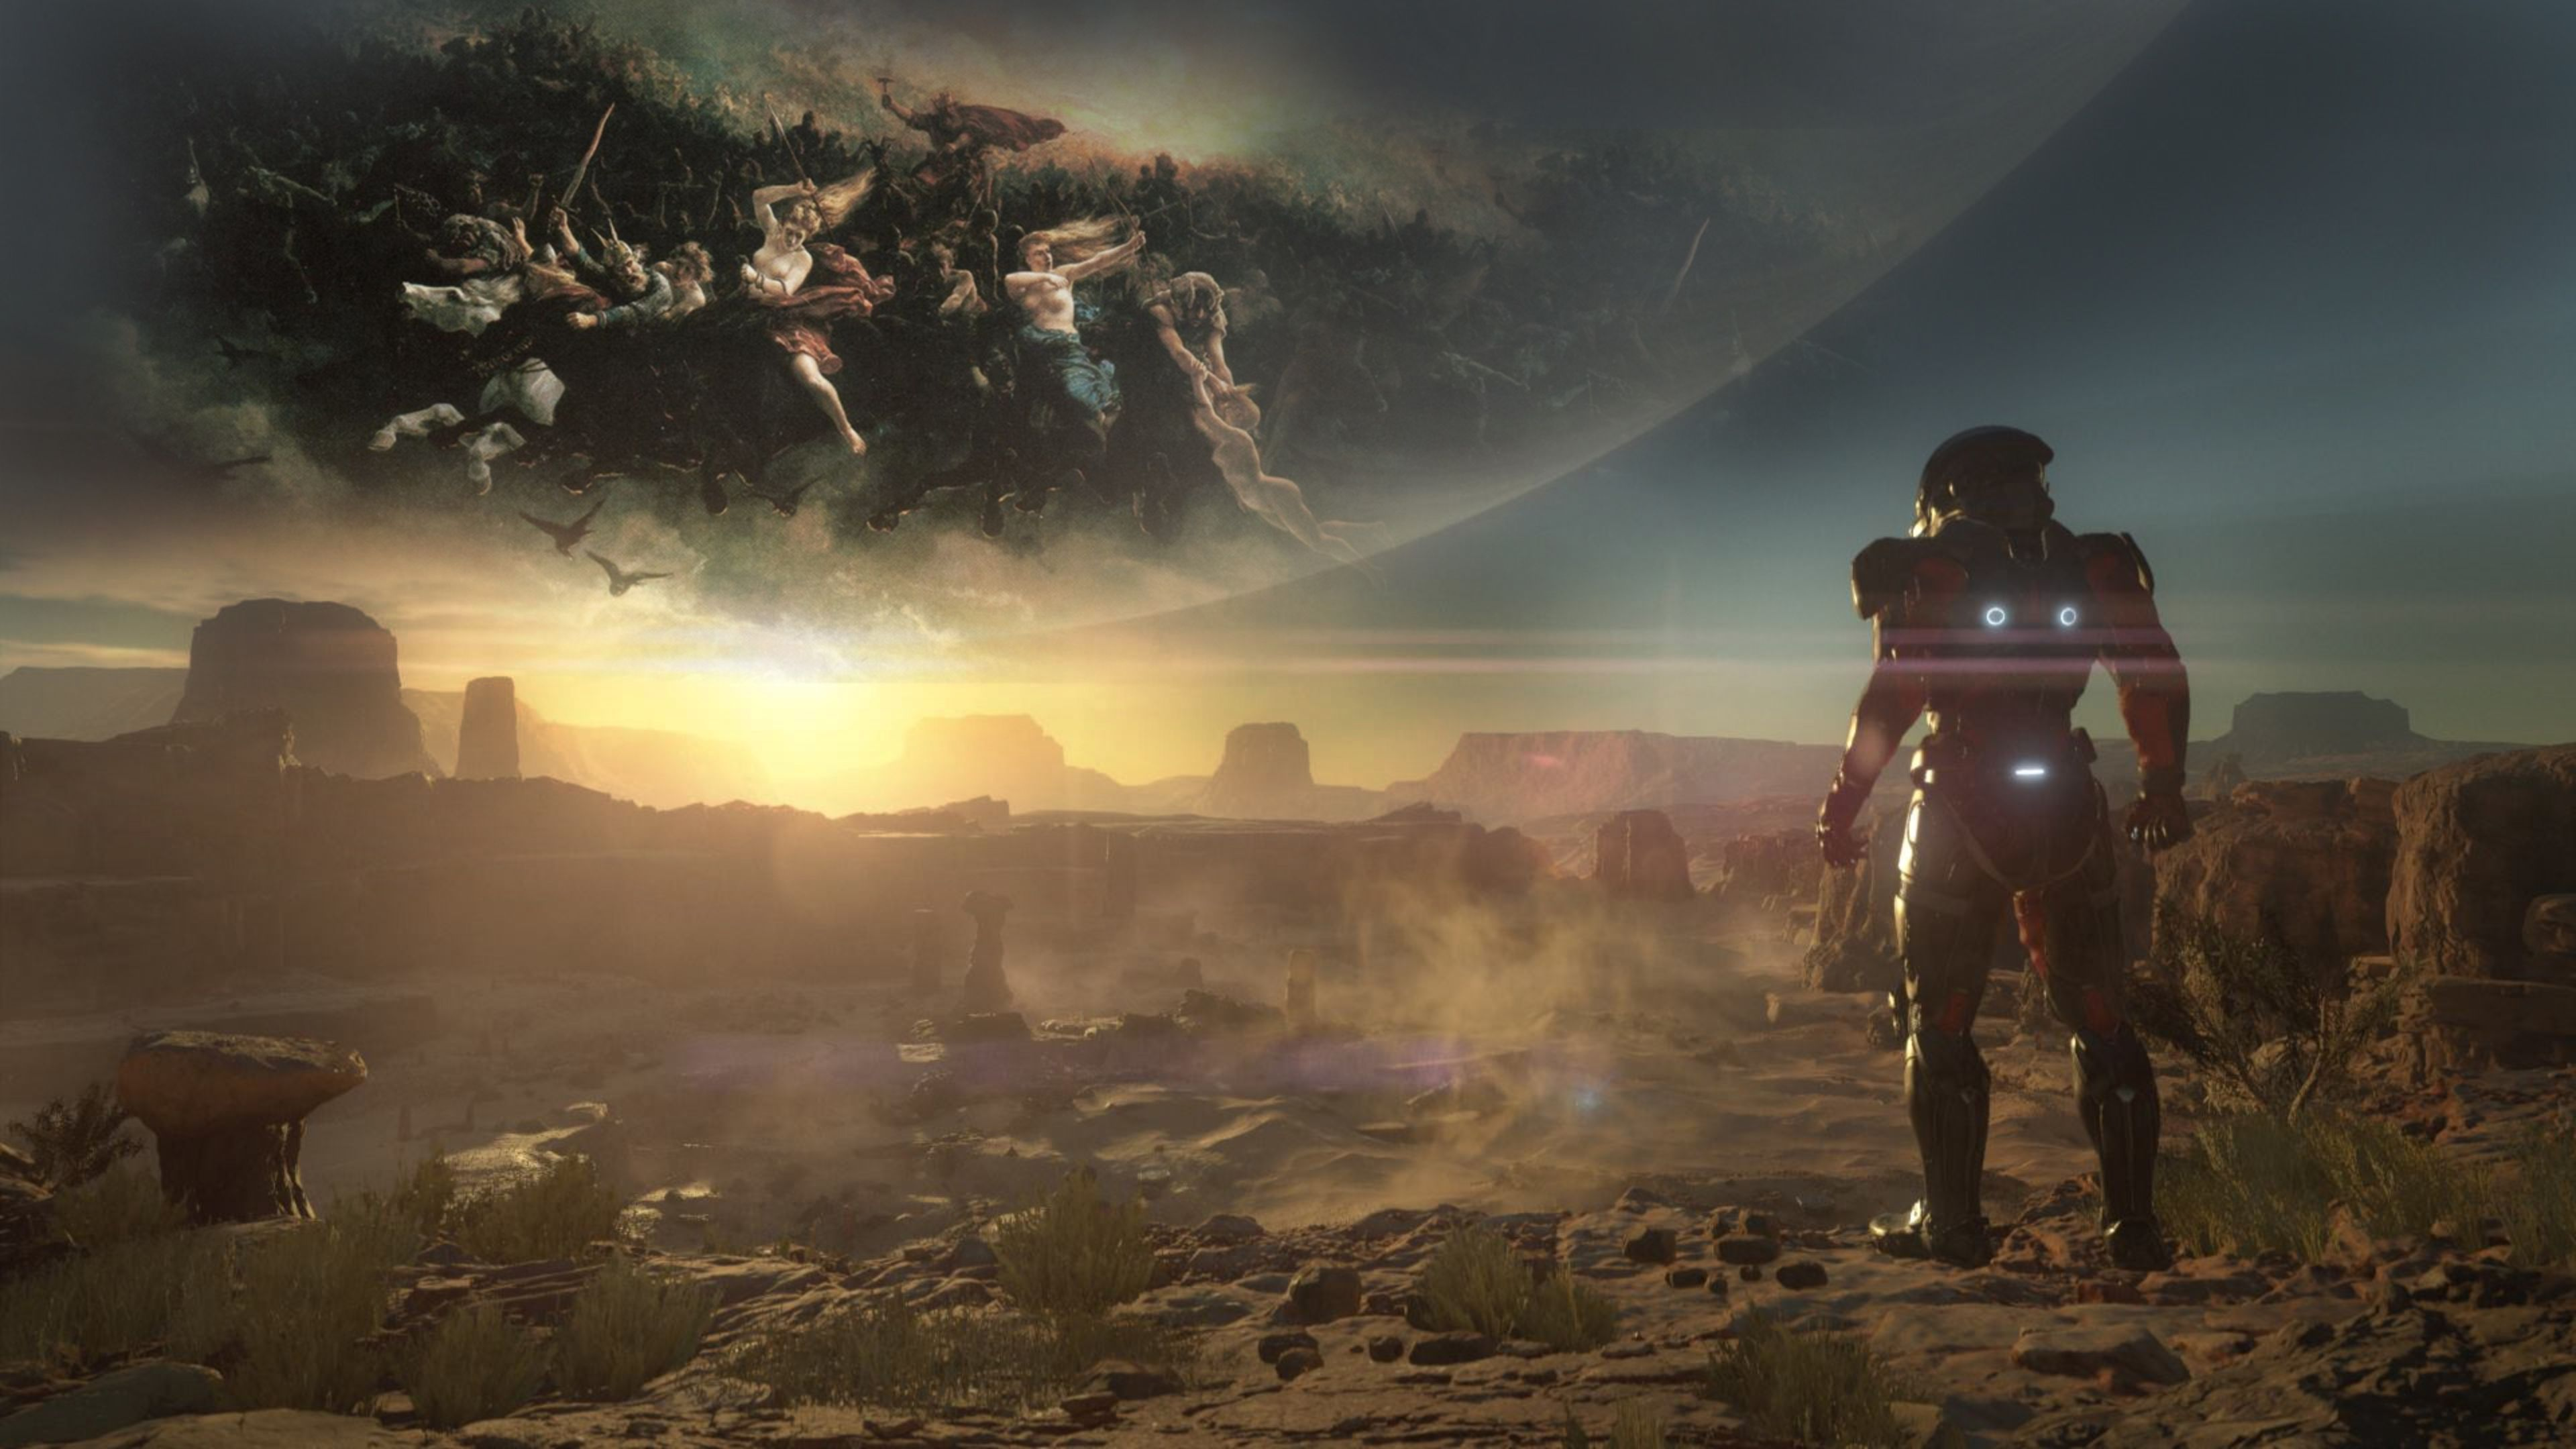 Mass Effect Andromeda Wallpaper Hd Posted By Christopher Walker